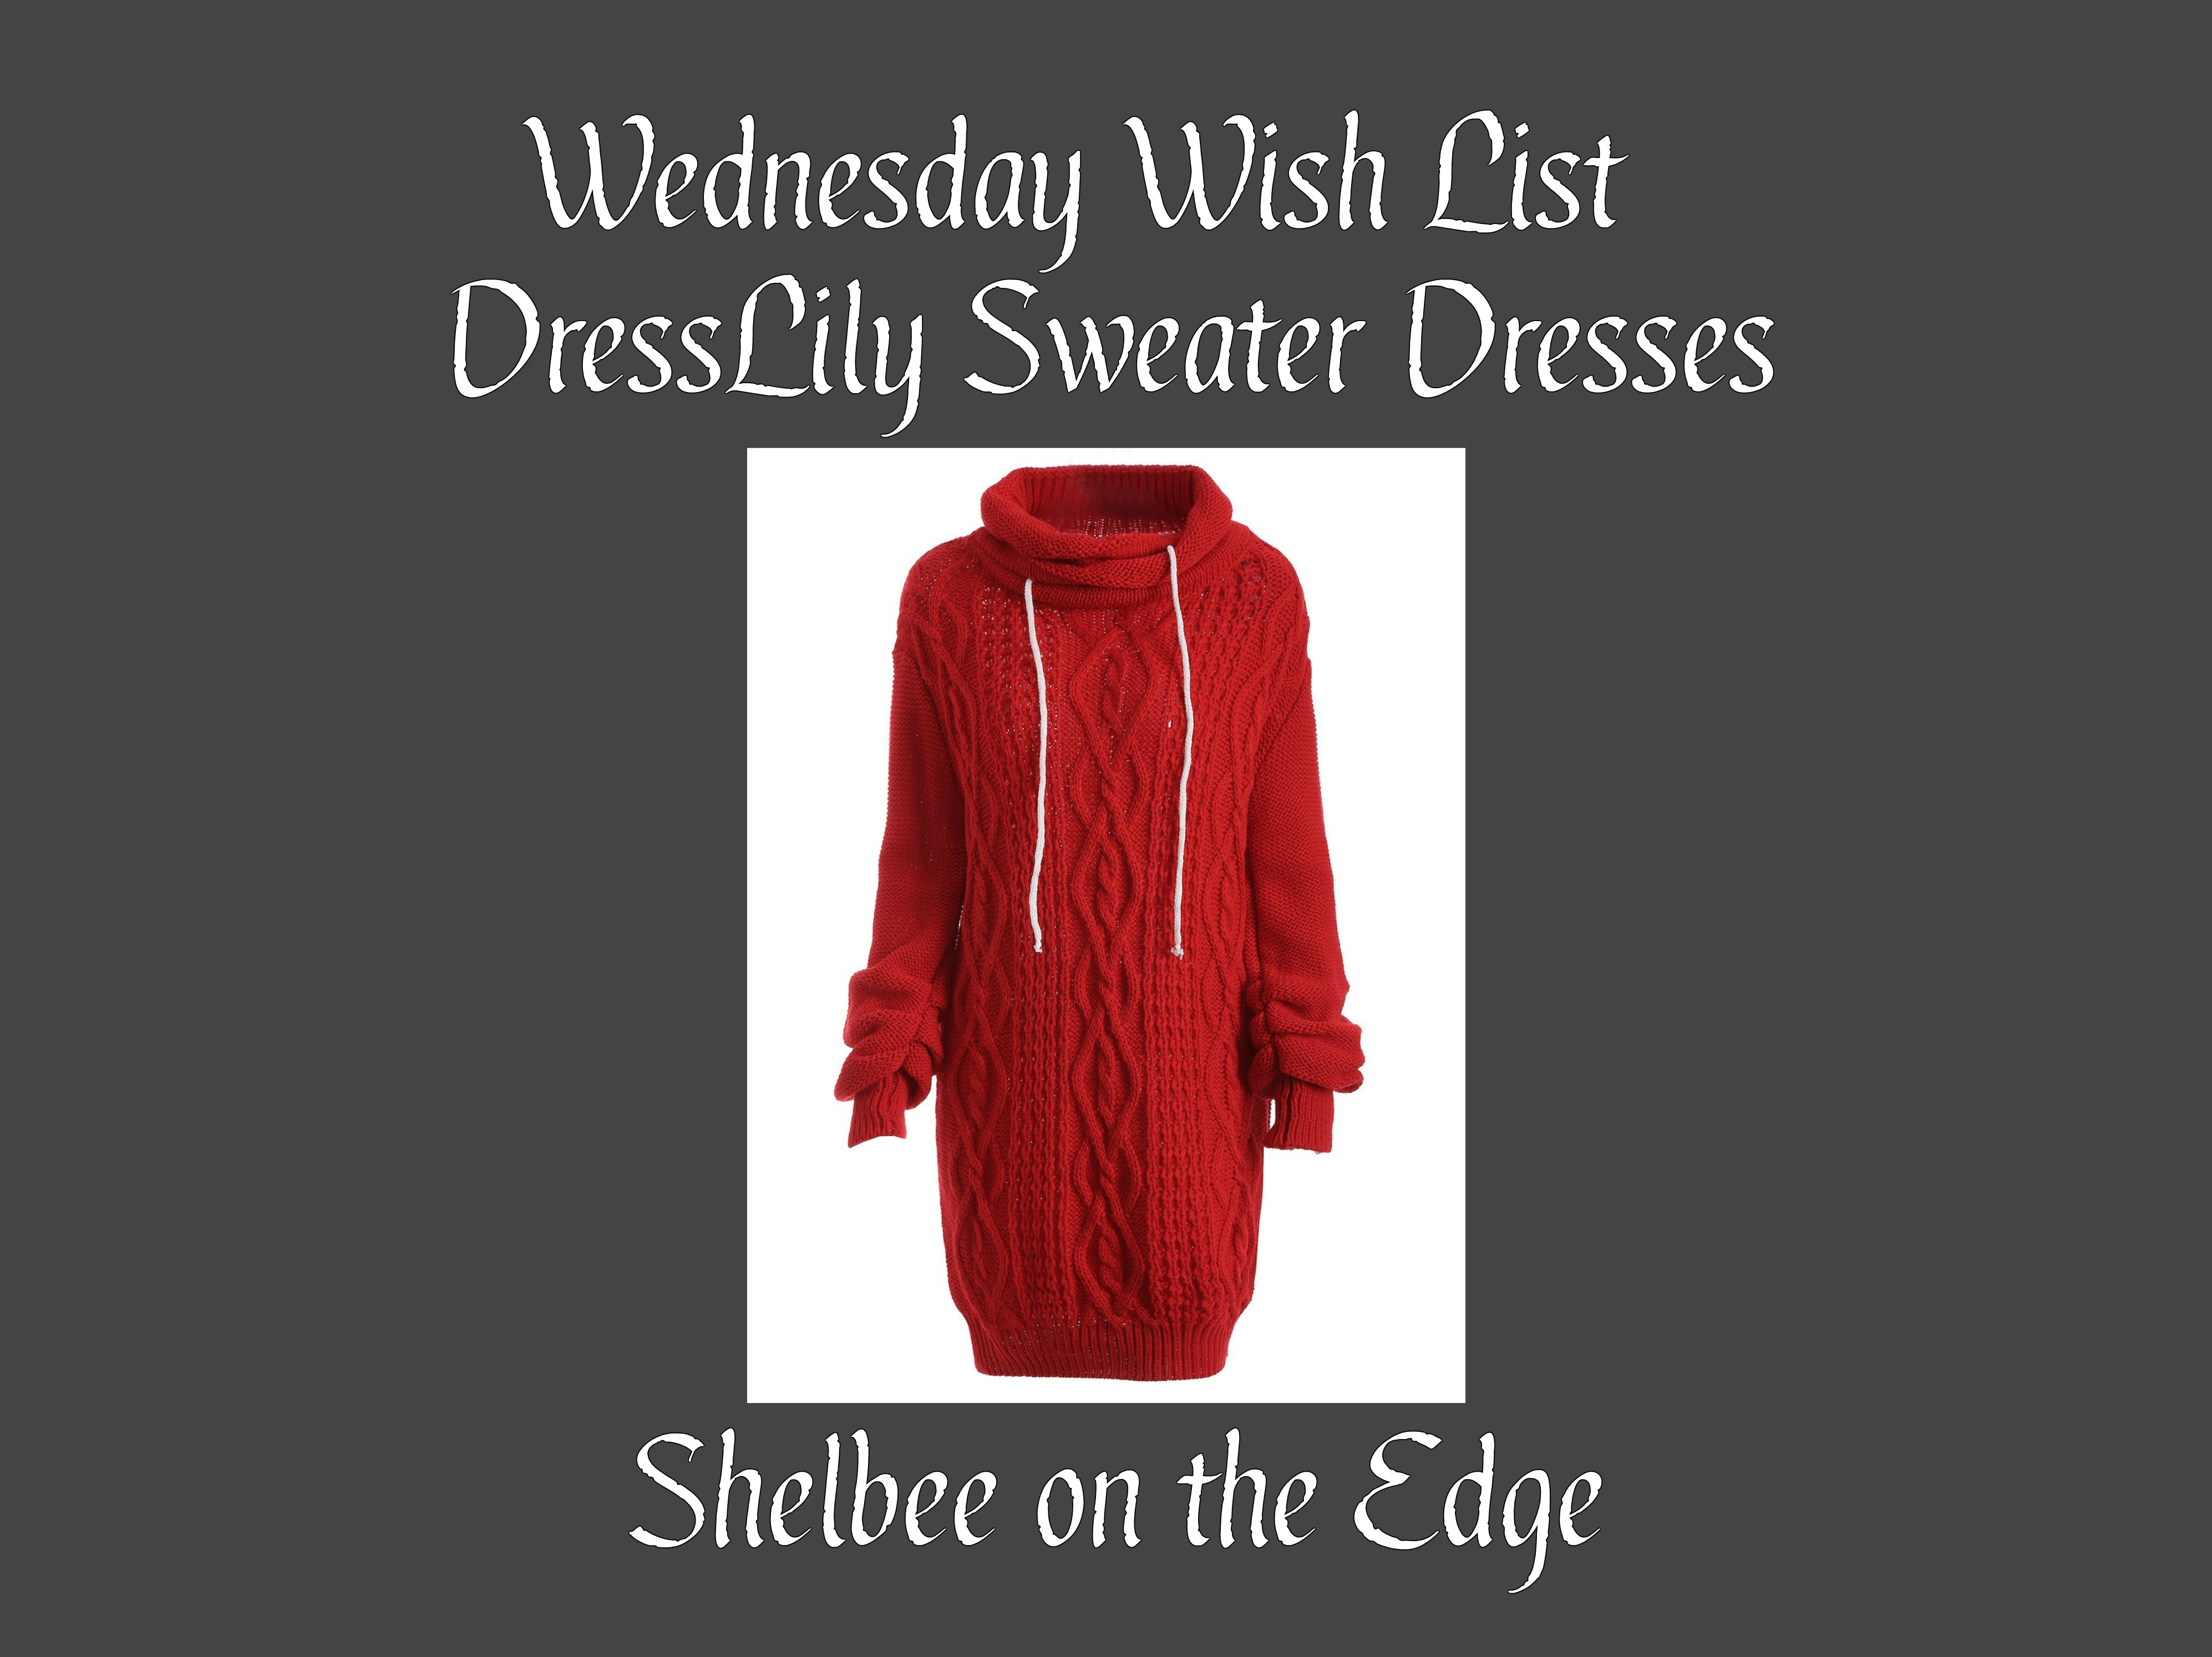 Wednesday Wish List: Sweater Dresses from DressLily